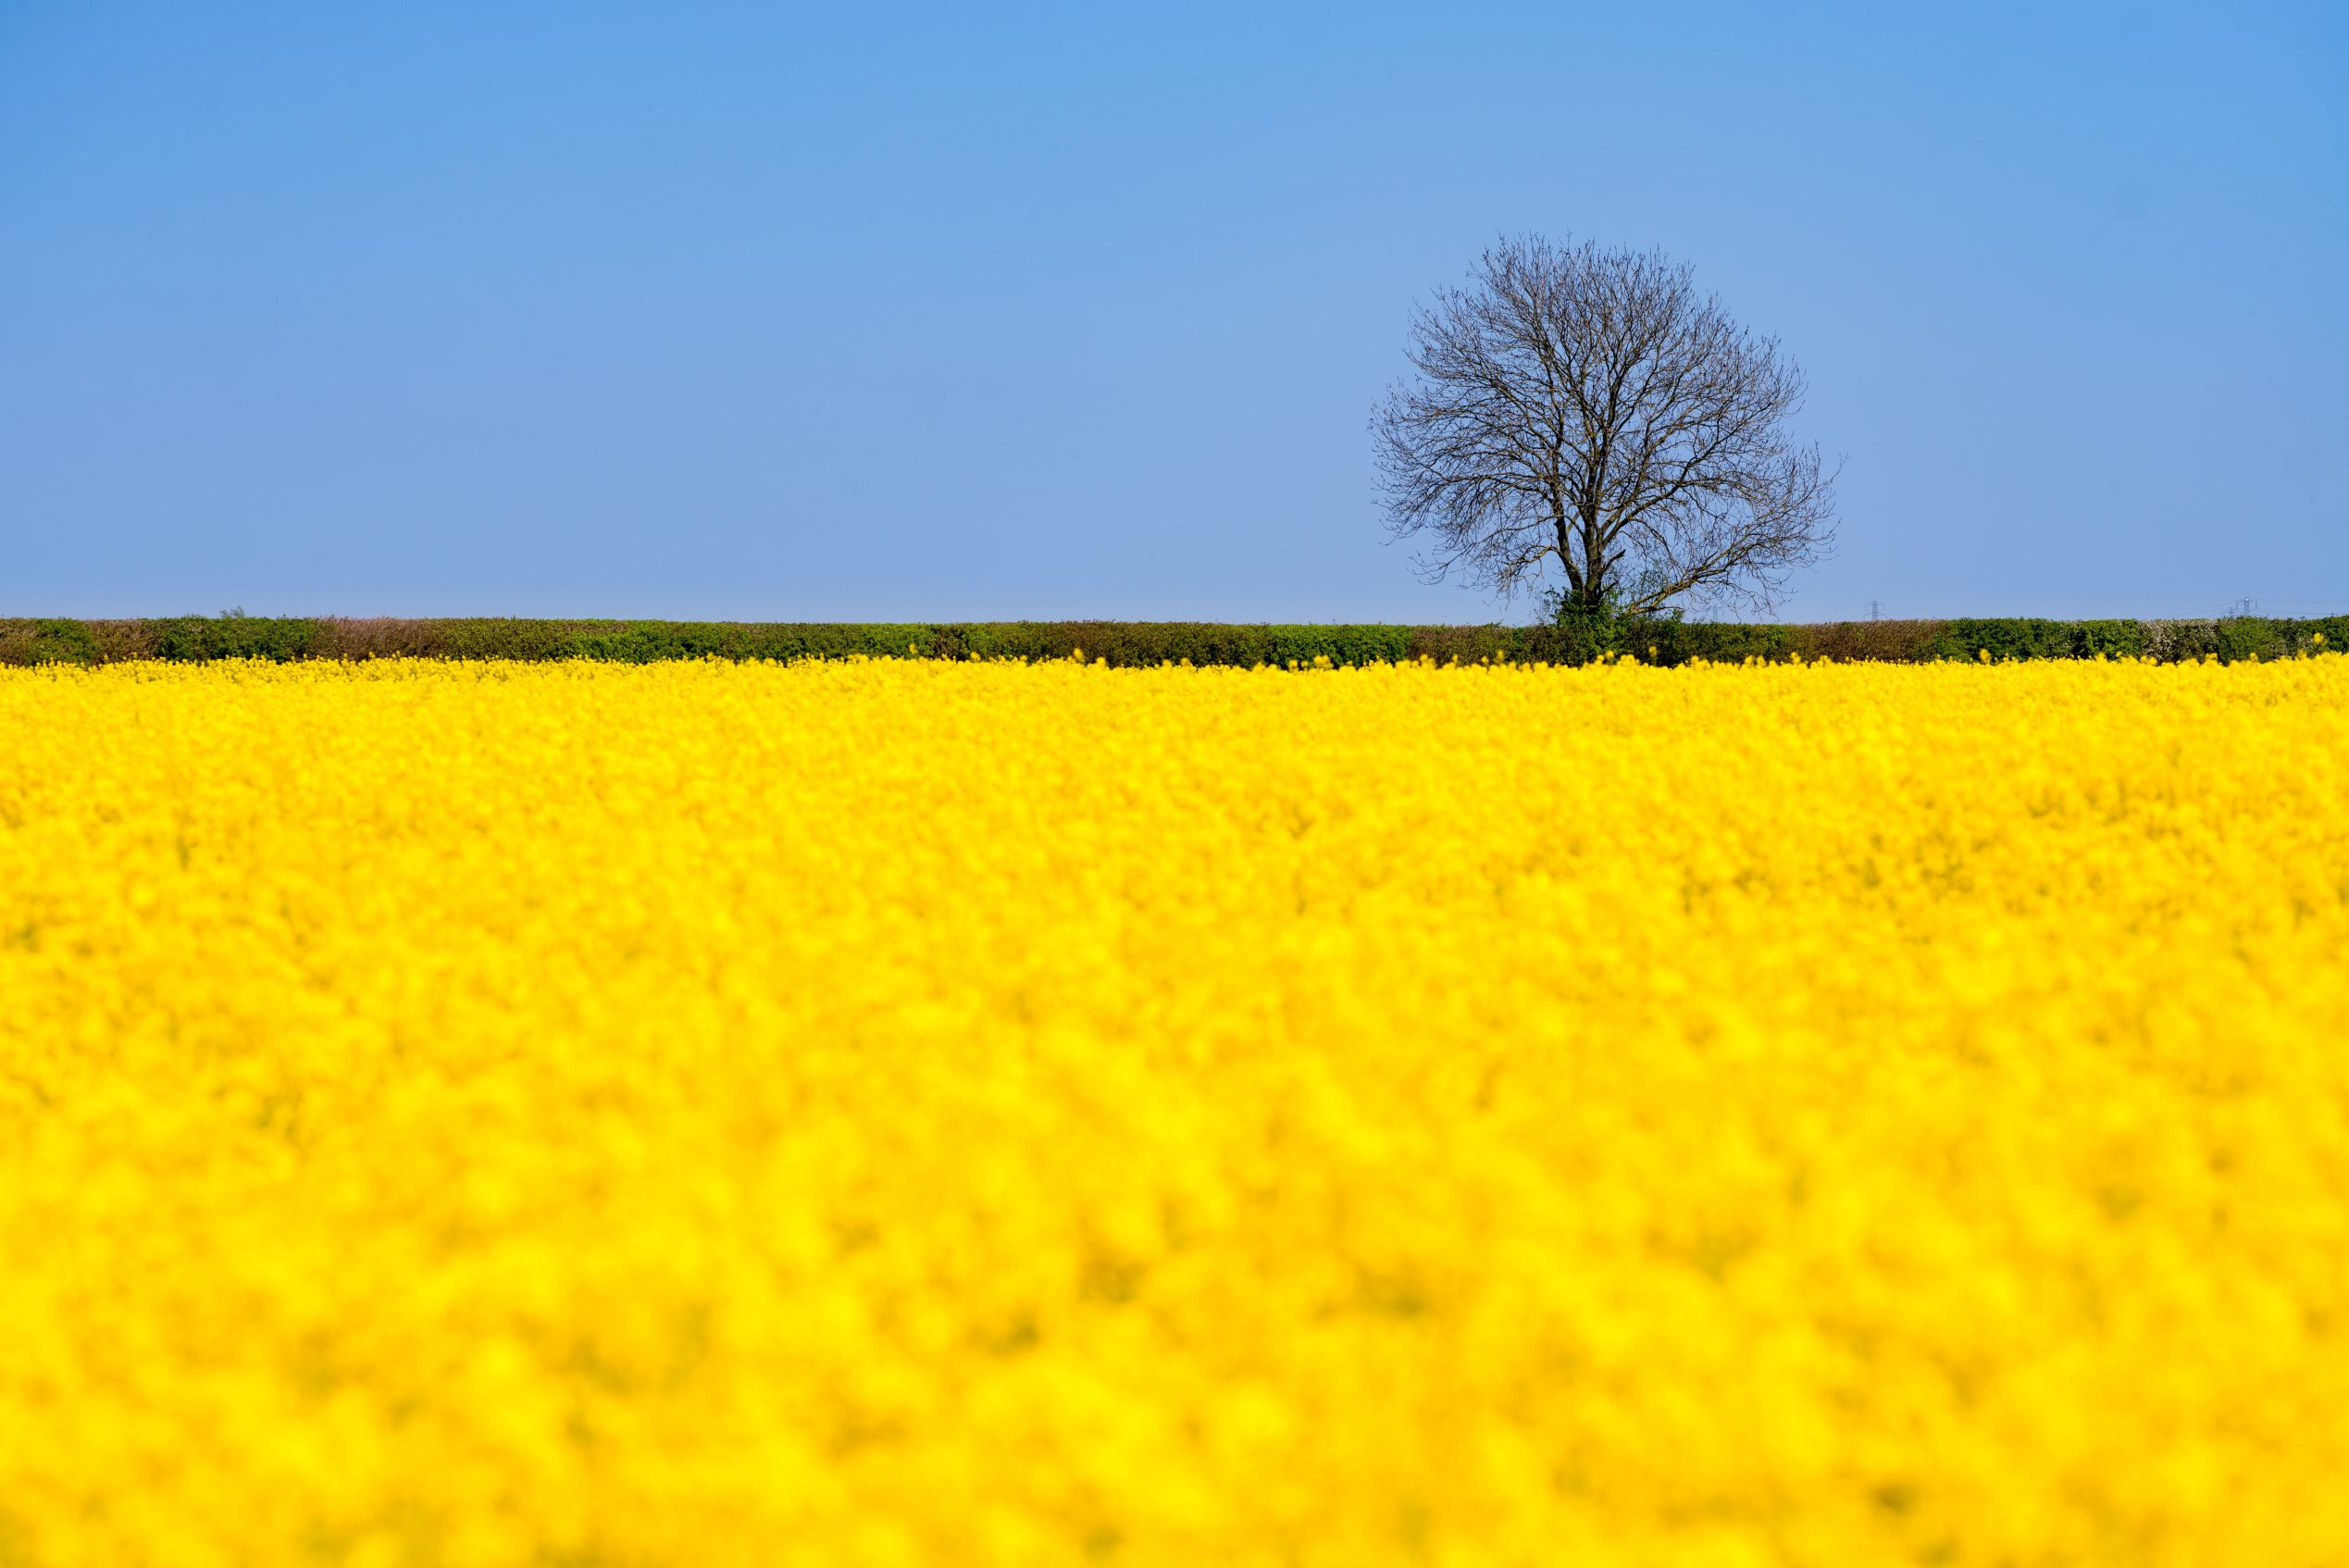 Слайд 45 из 86: A rapeseed field, Cambridgeshire Photographer Valerio Berdini captured a vibrant image of a rapeseed plantation in full bloom near Waterbeach in Cambridgeshire, Britain, yesterday (8 May 2016)